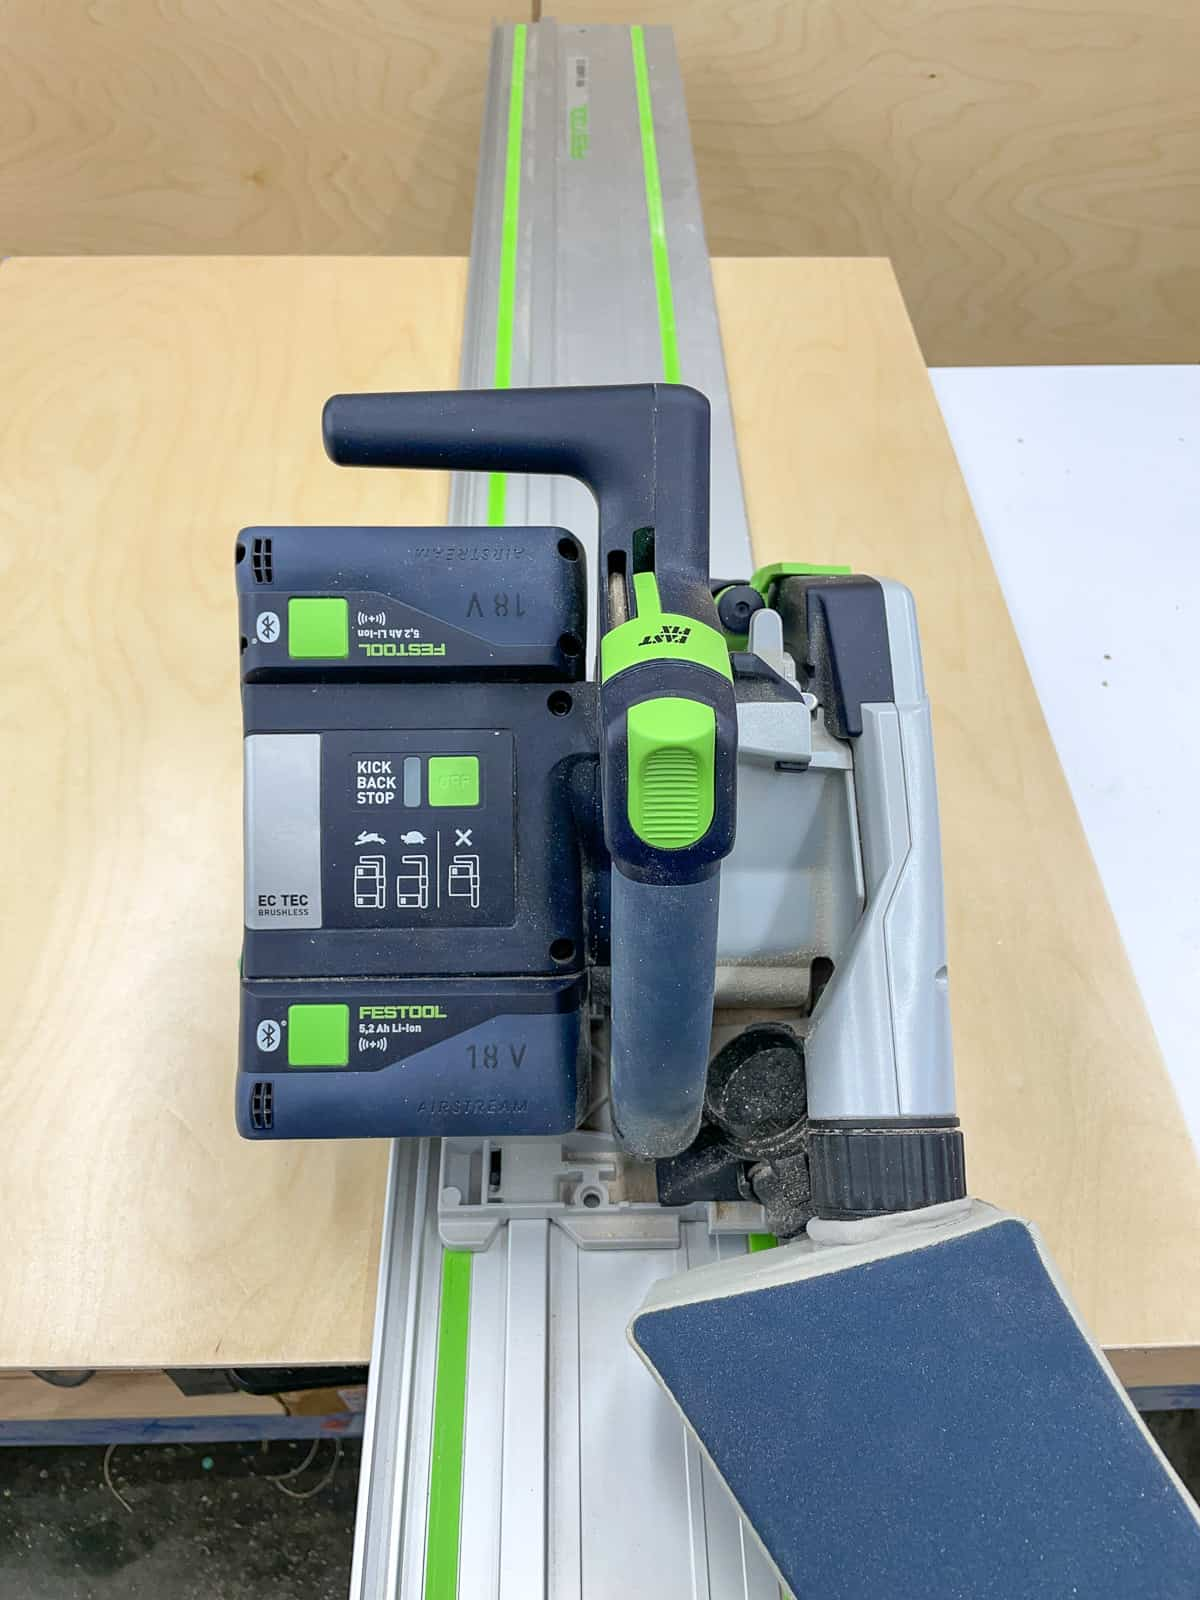 Festool track saw with track on plywood sheet before cutting cabinet box pieces